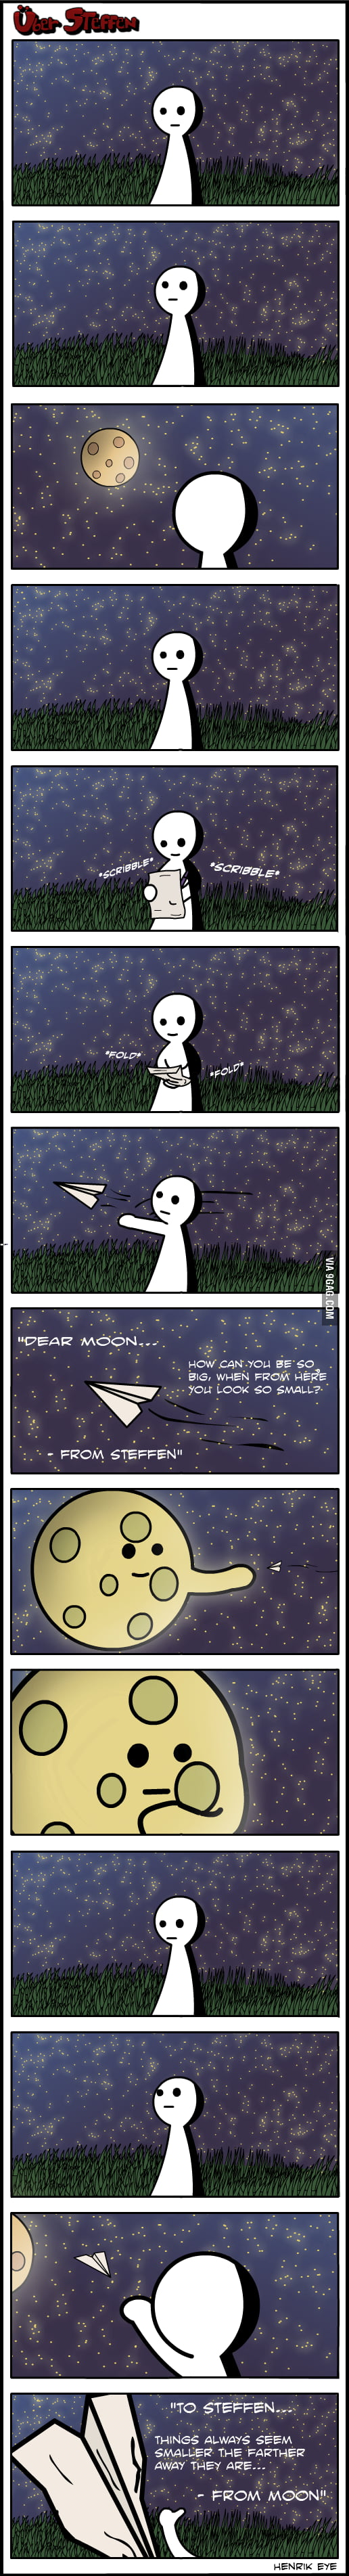 A letter to the moon